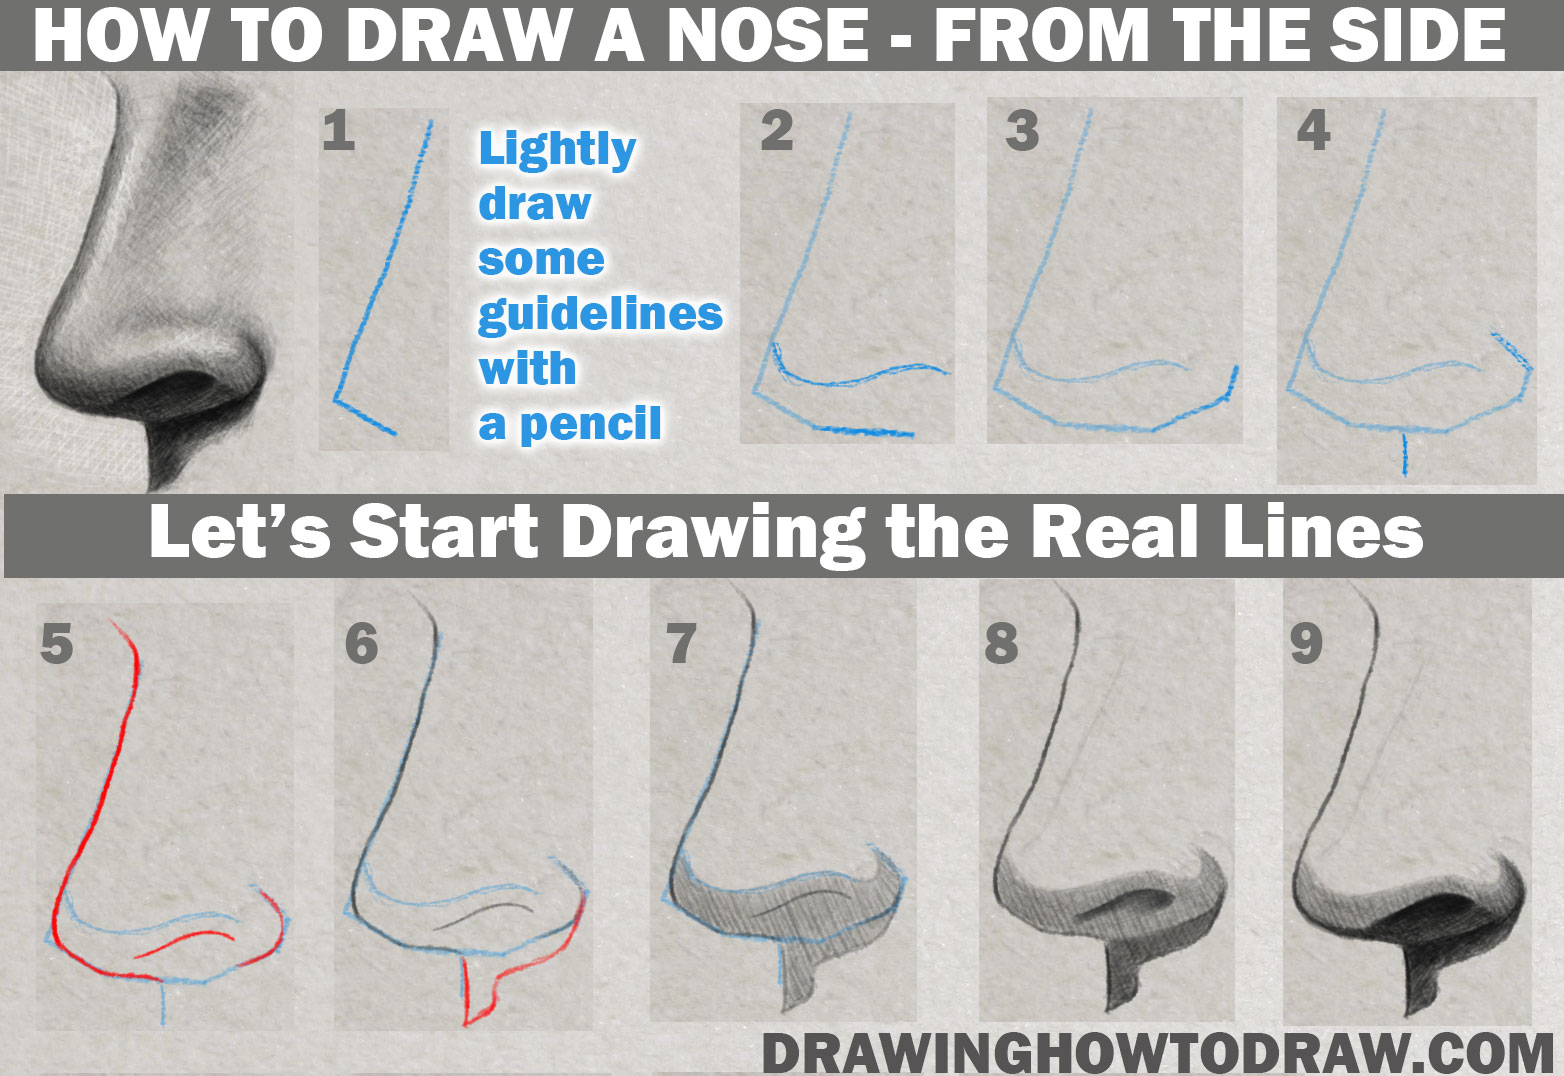 Learn How to Draw and Shade a Realistic Nose (Side View) in Pencil or Graphite Simple Steps Lesson